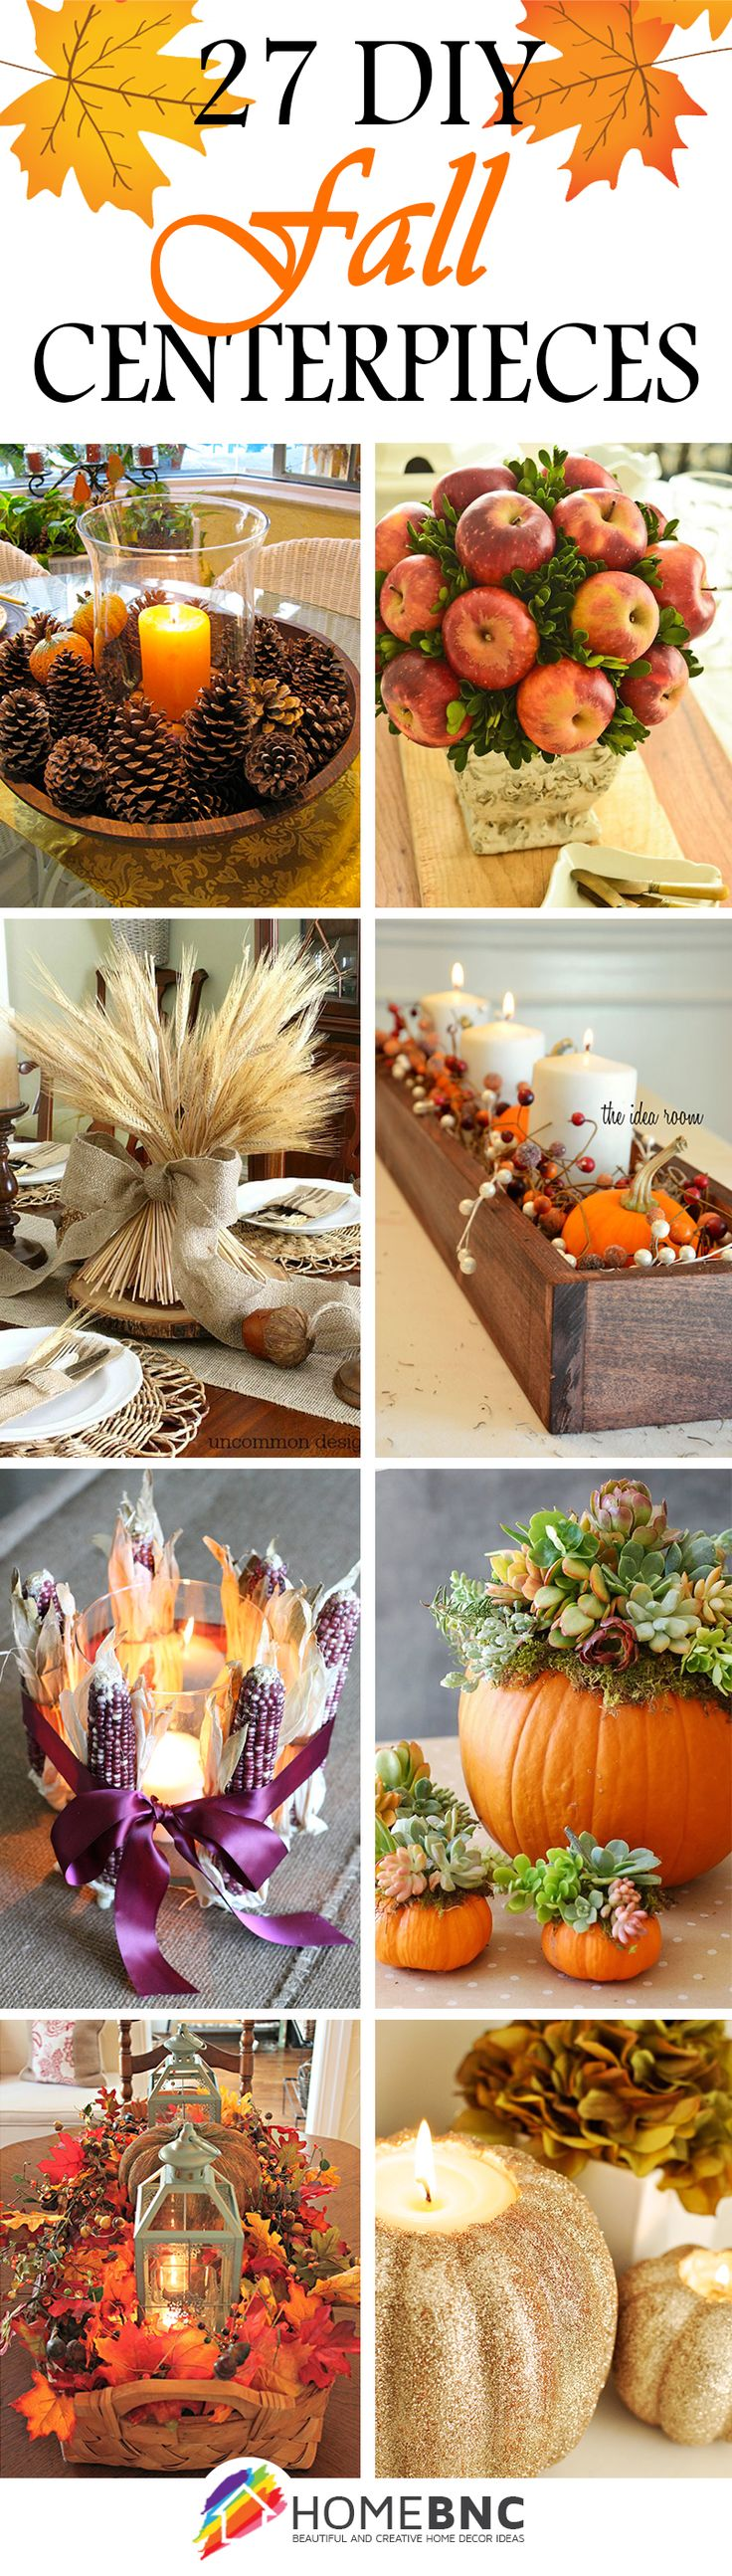 best stunning tablescapes u centerpieces images on pinterest